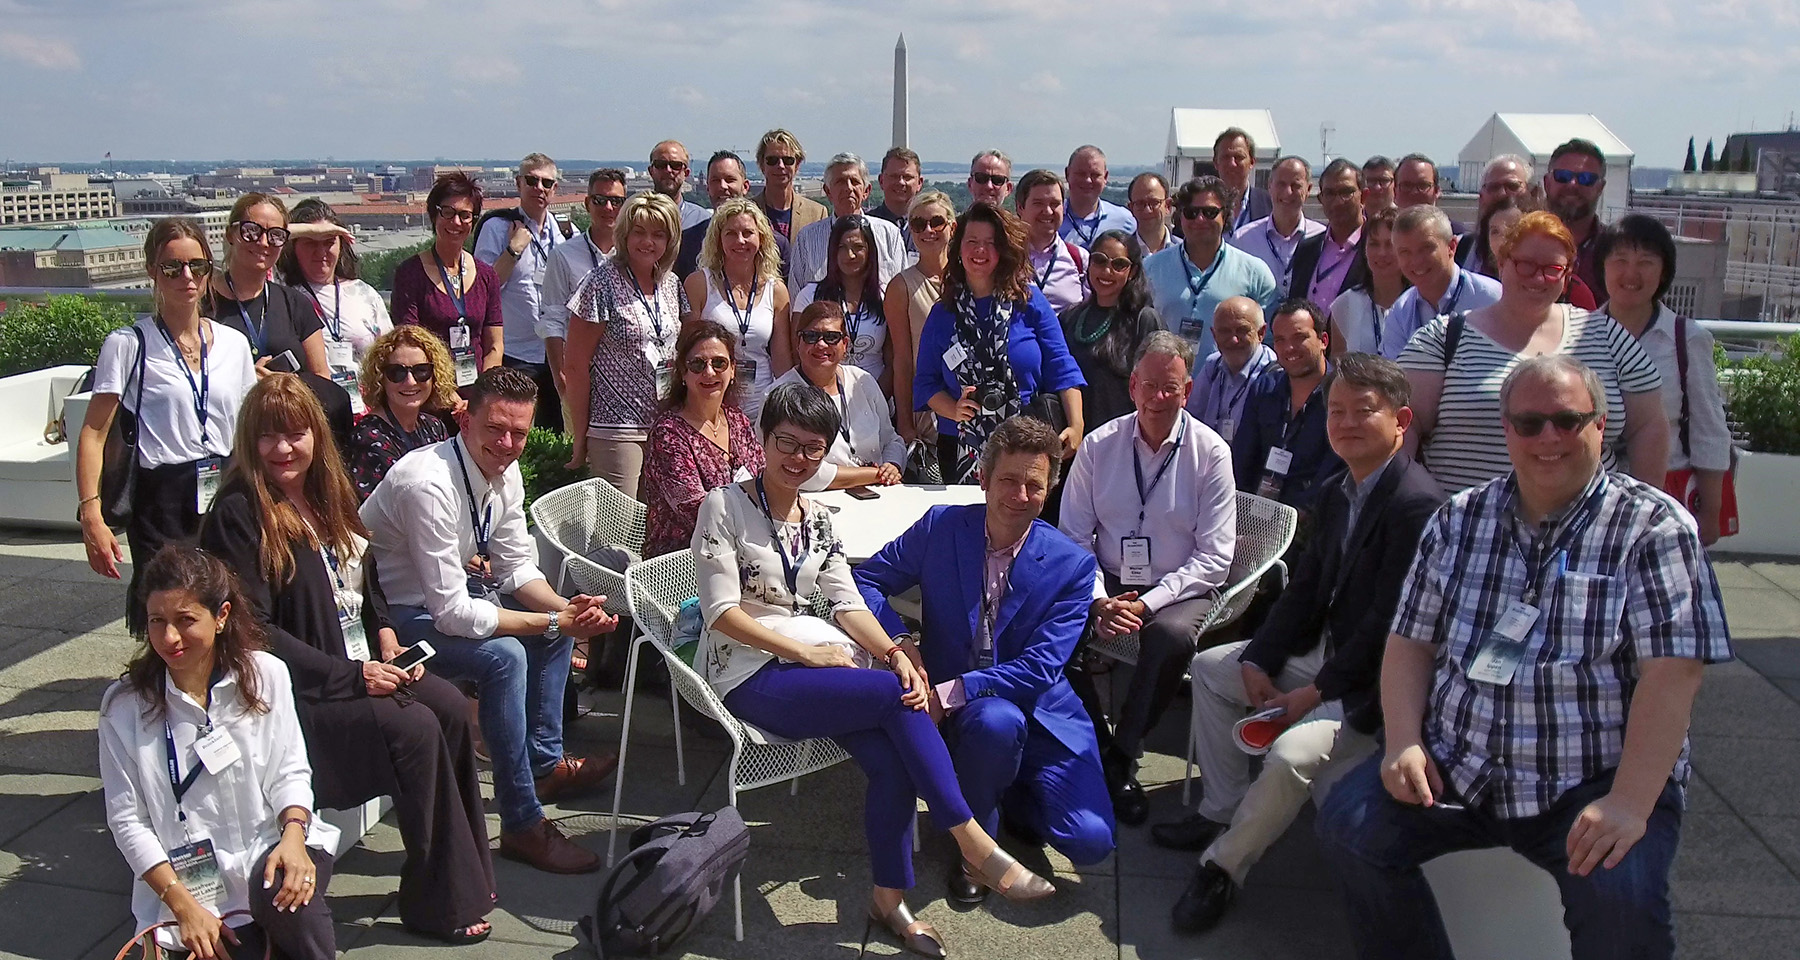 8 media brands share best practices with INMA study tour in Washington, D.C.